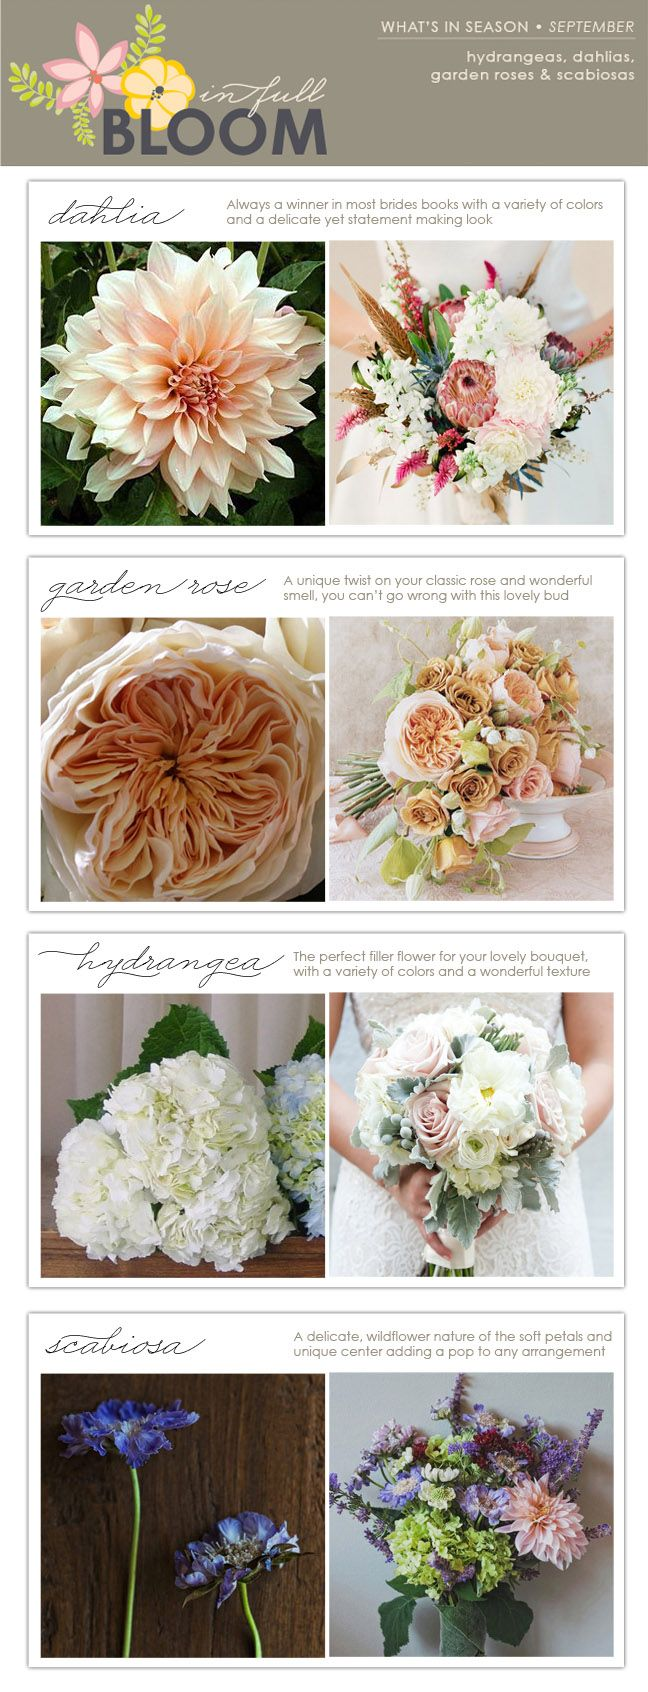 Best say i doagain images on pinterest bridal hairstyles